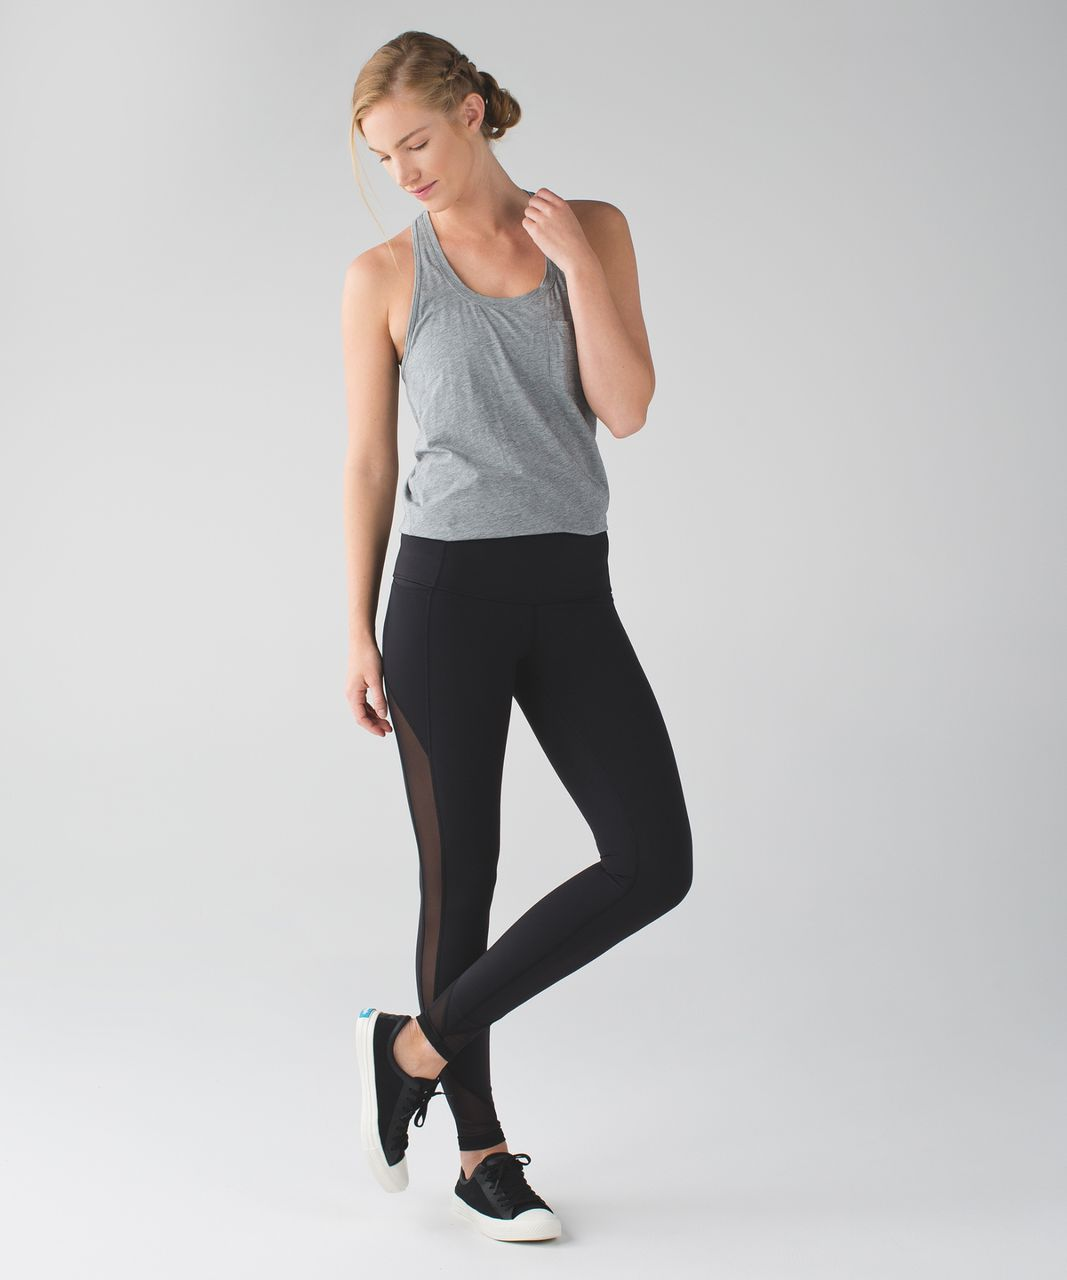 Lululemon Make A Move Tight - Black